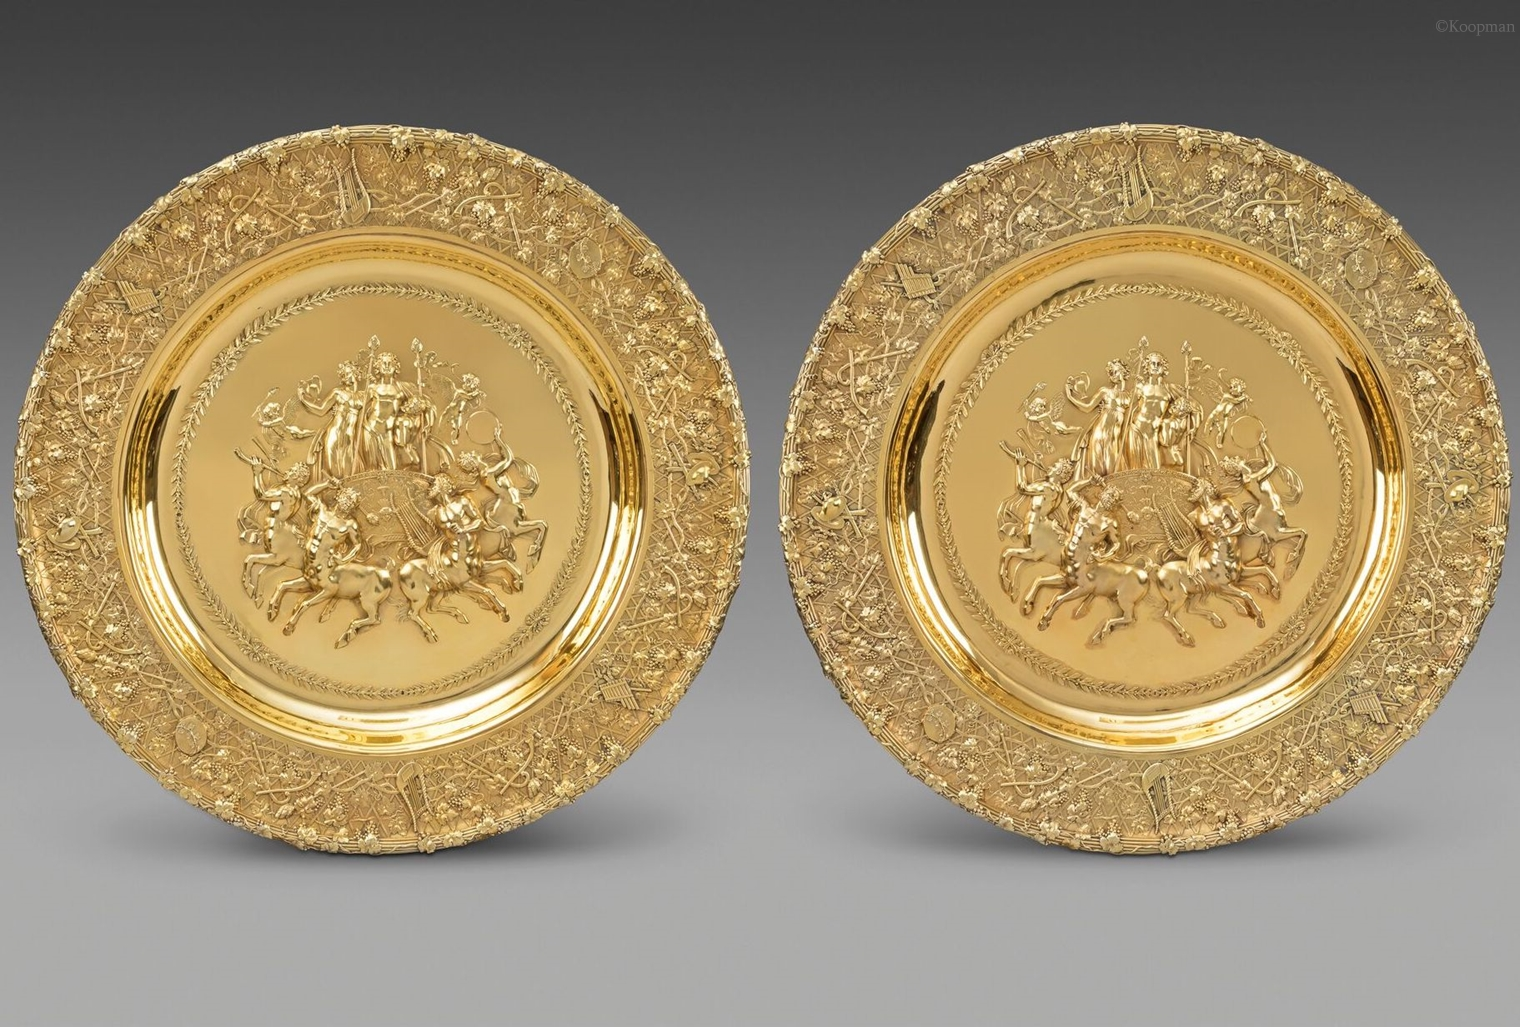 A Monumental & Highly Important Pair of Sideboard Dishes